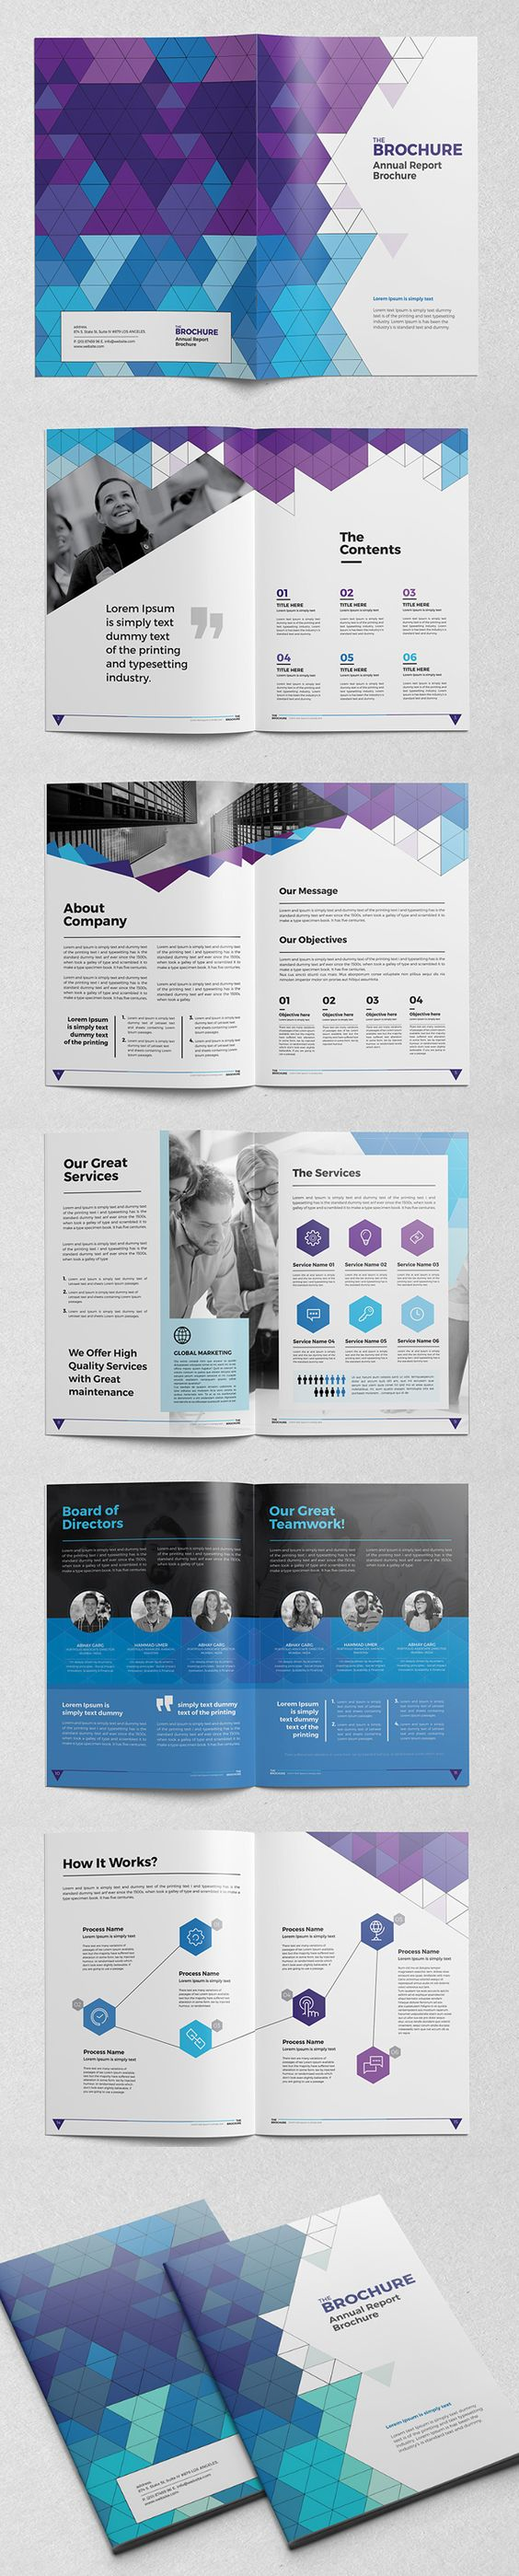 template brochure indesign - abstract brochure catalog indesign template booklet